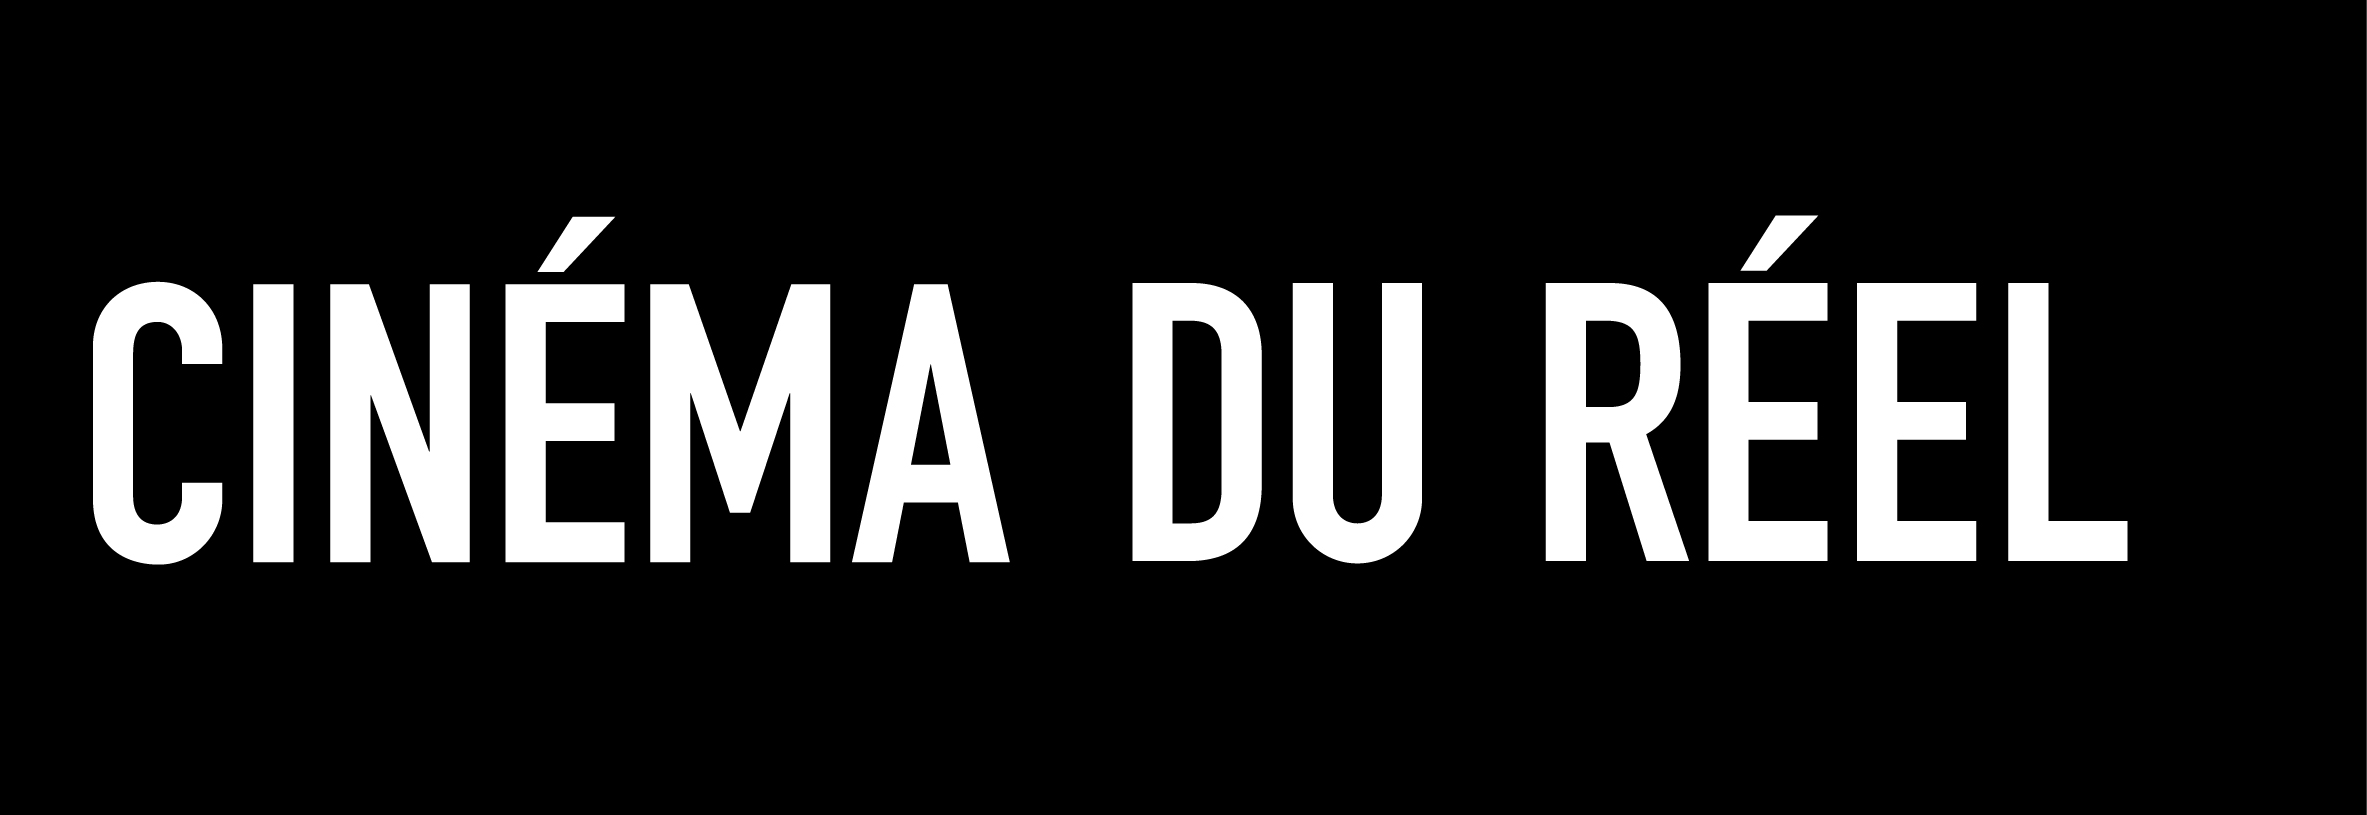 Cinéma du réel International Documentary Film Festival